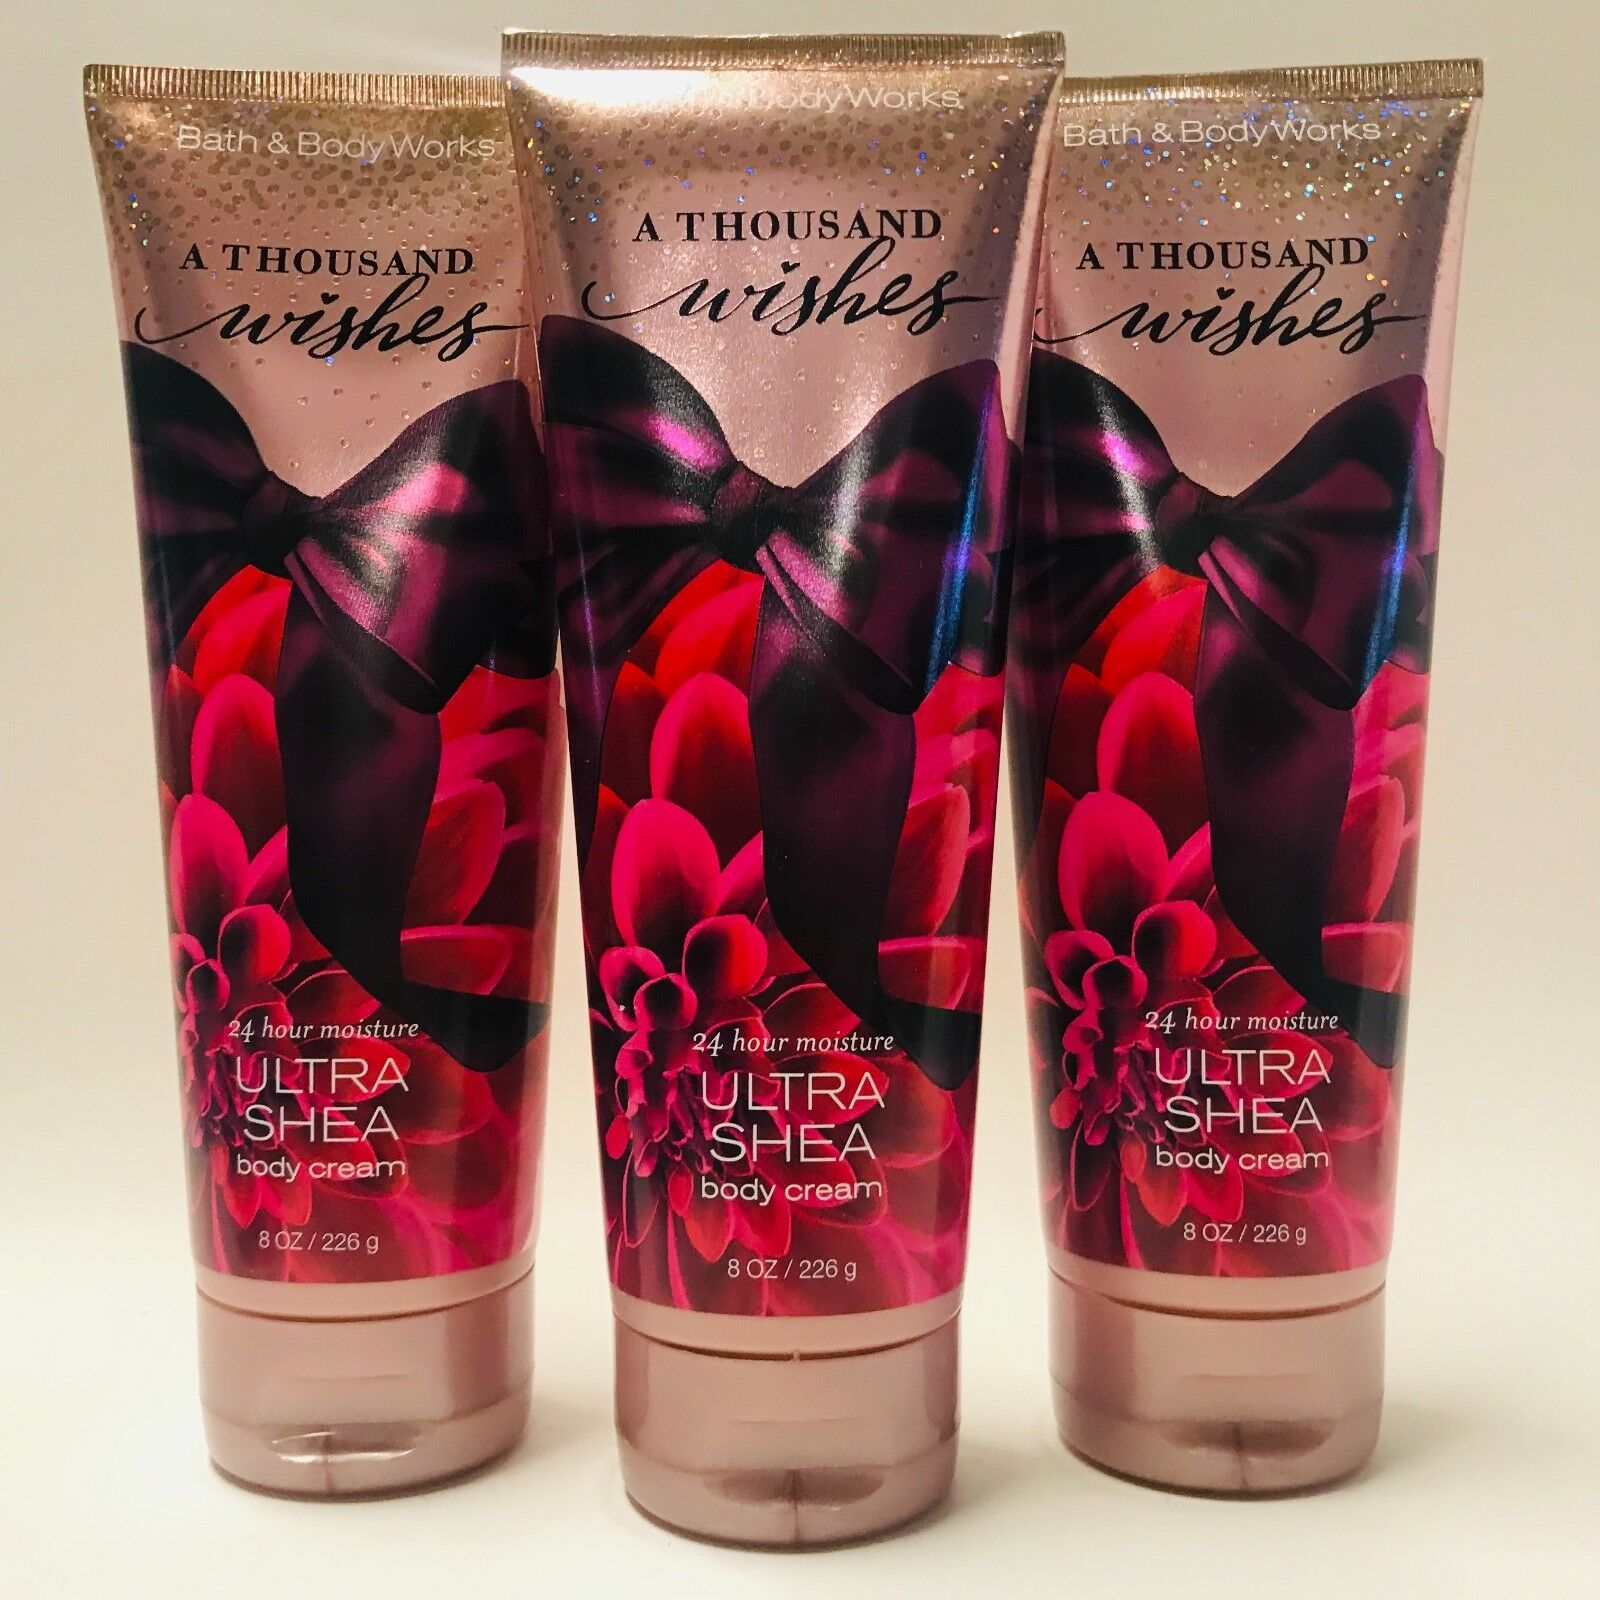 Bath & Body Works, Signature Collection Ultra Shea Body Crea